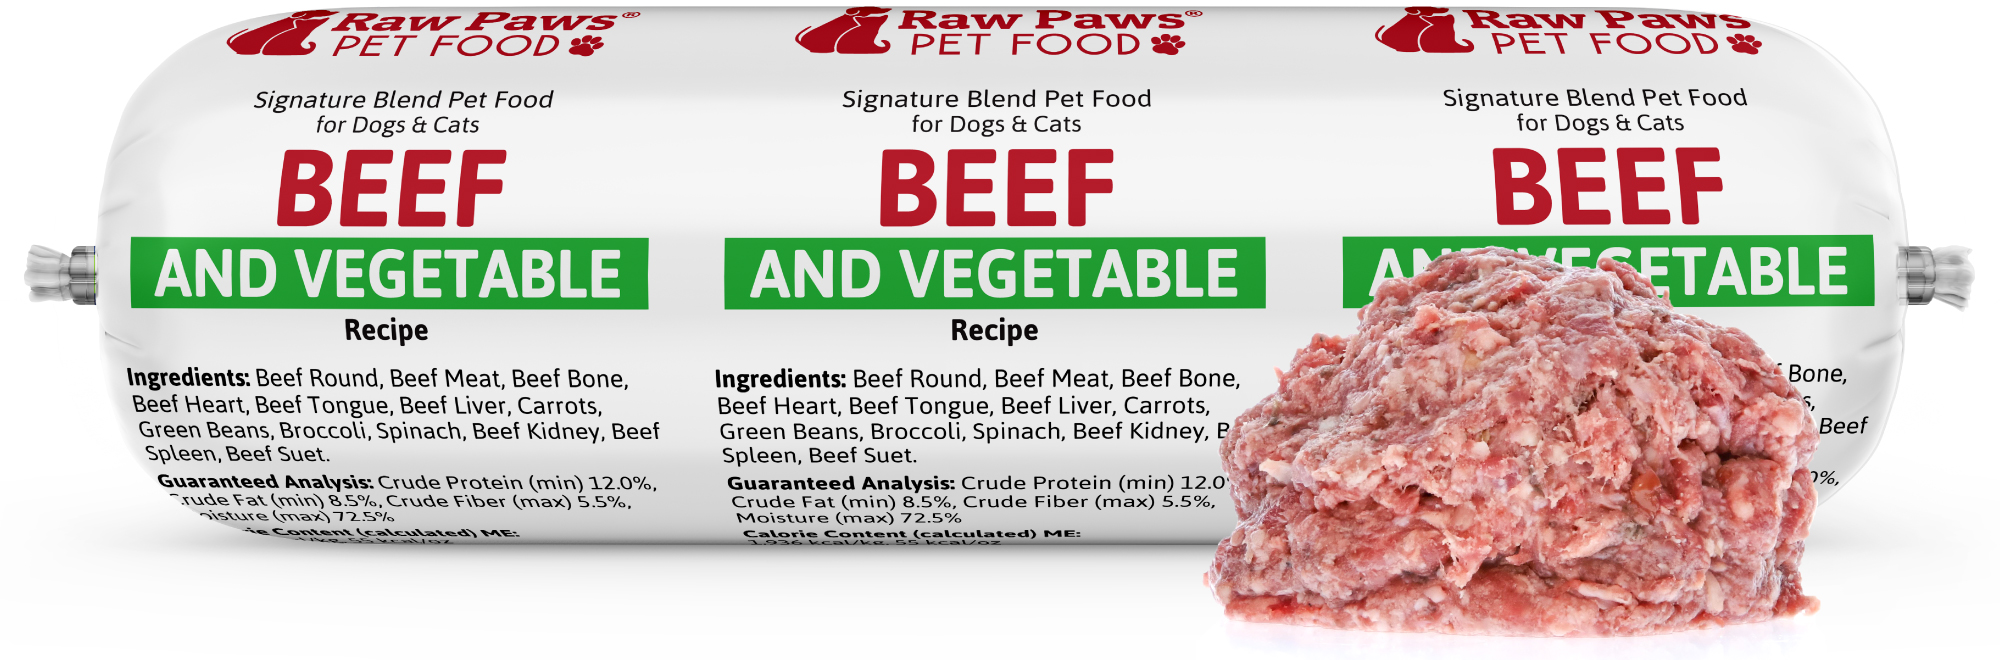 Raw Paws Signature Blend Complete Beef & Vegetable for Dogs & Cats, 3 lbs